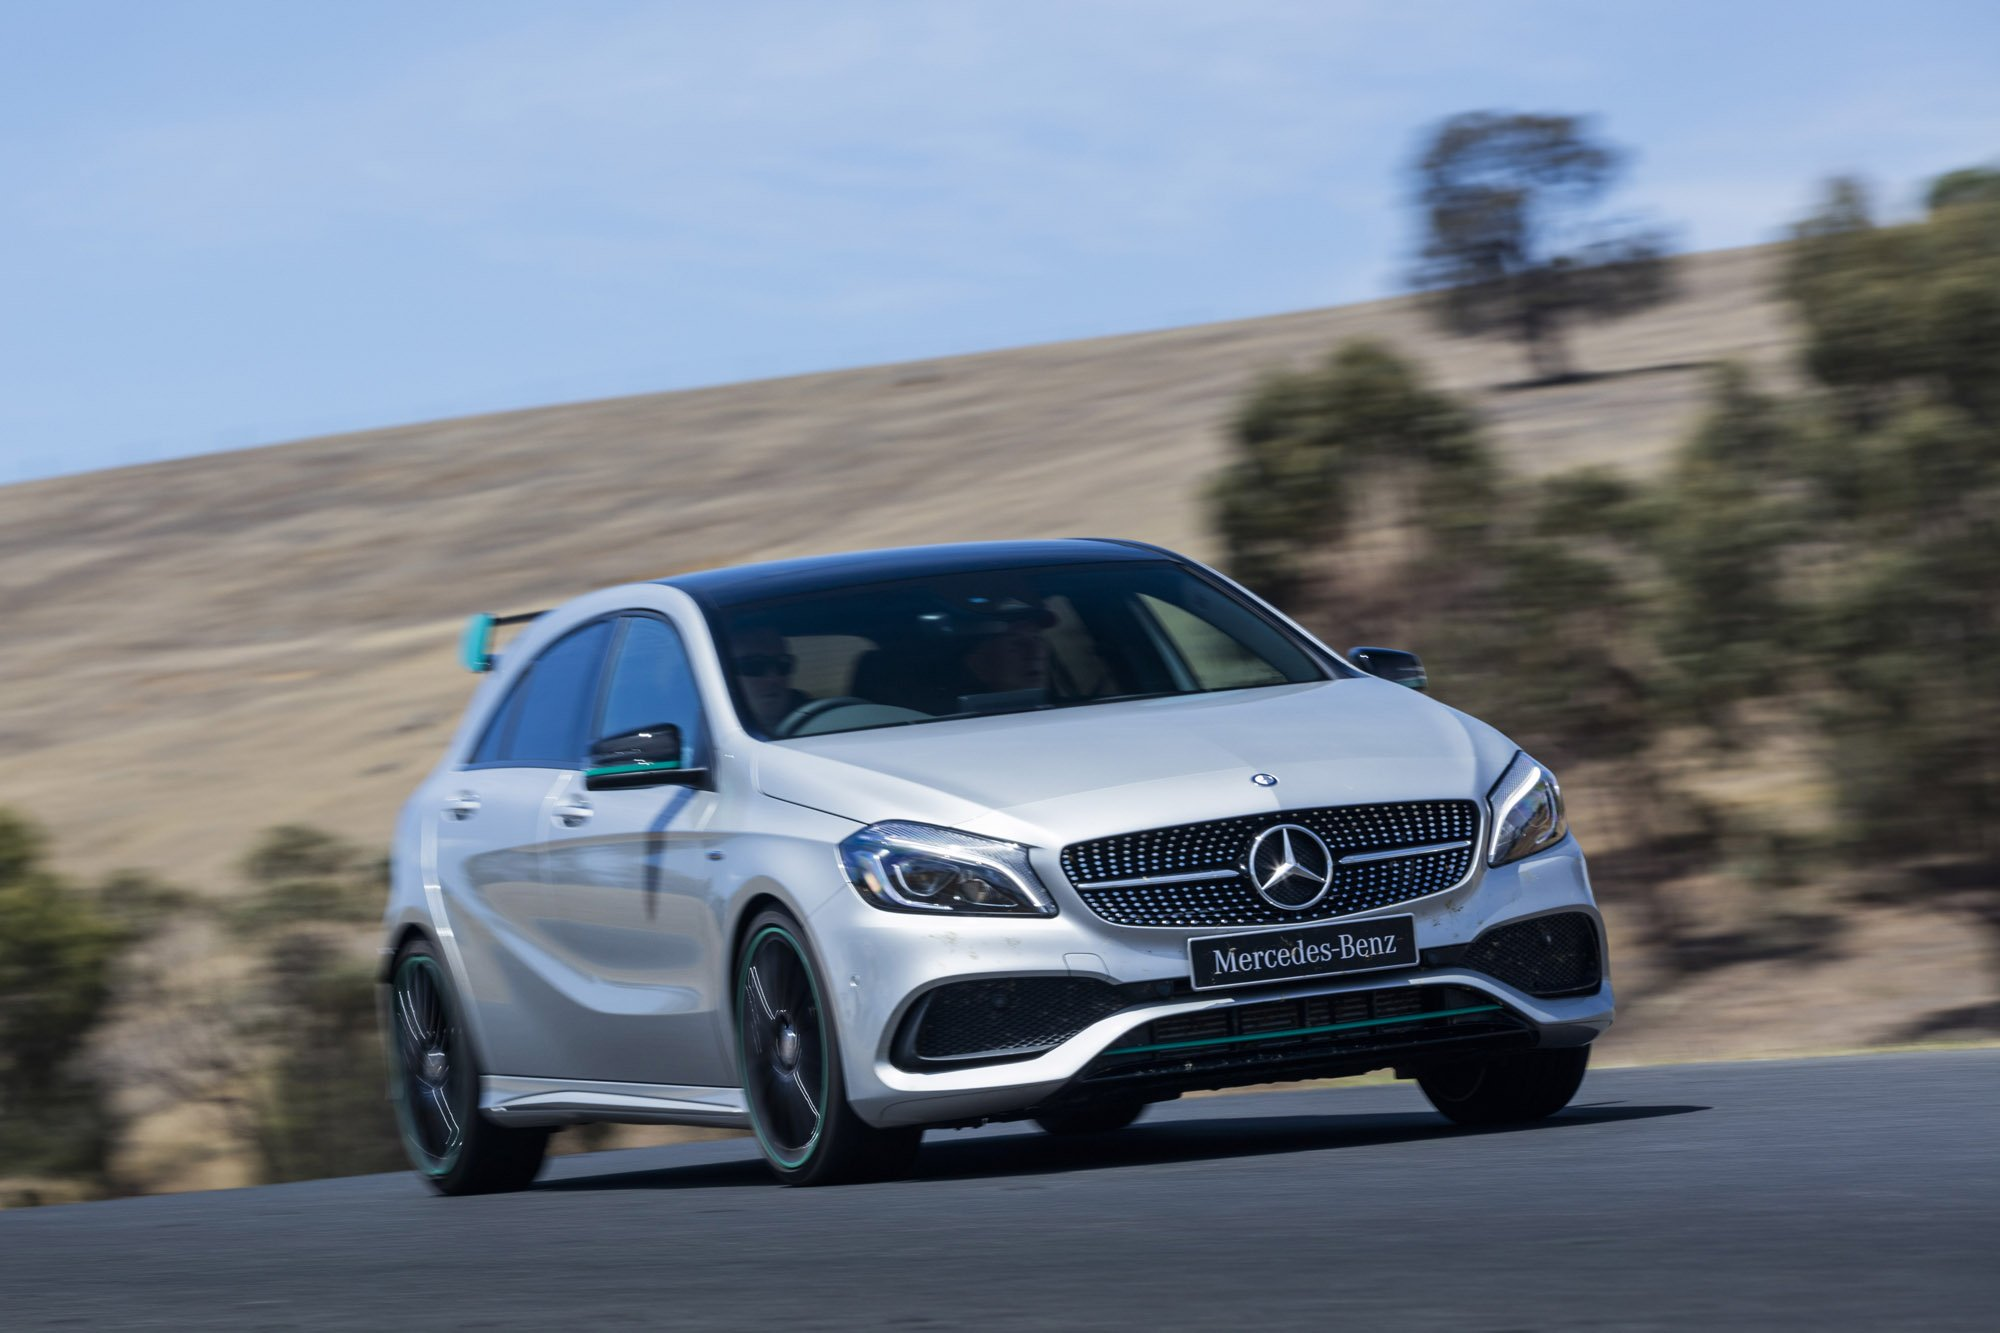 2016 mercedes benz a class review photos caradvice for Mercedes benz amg 6 3